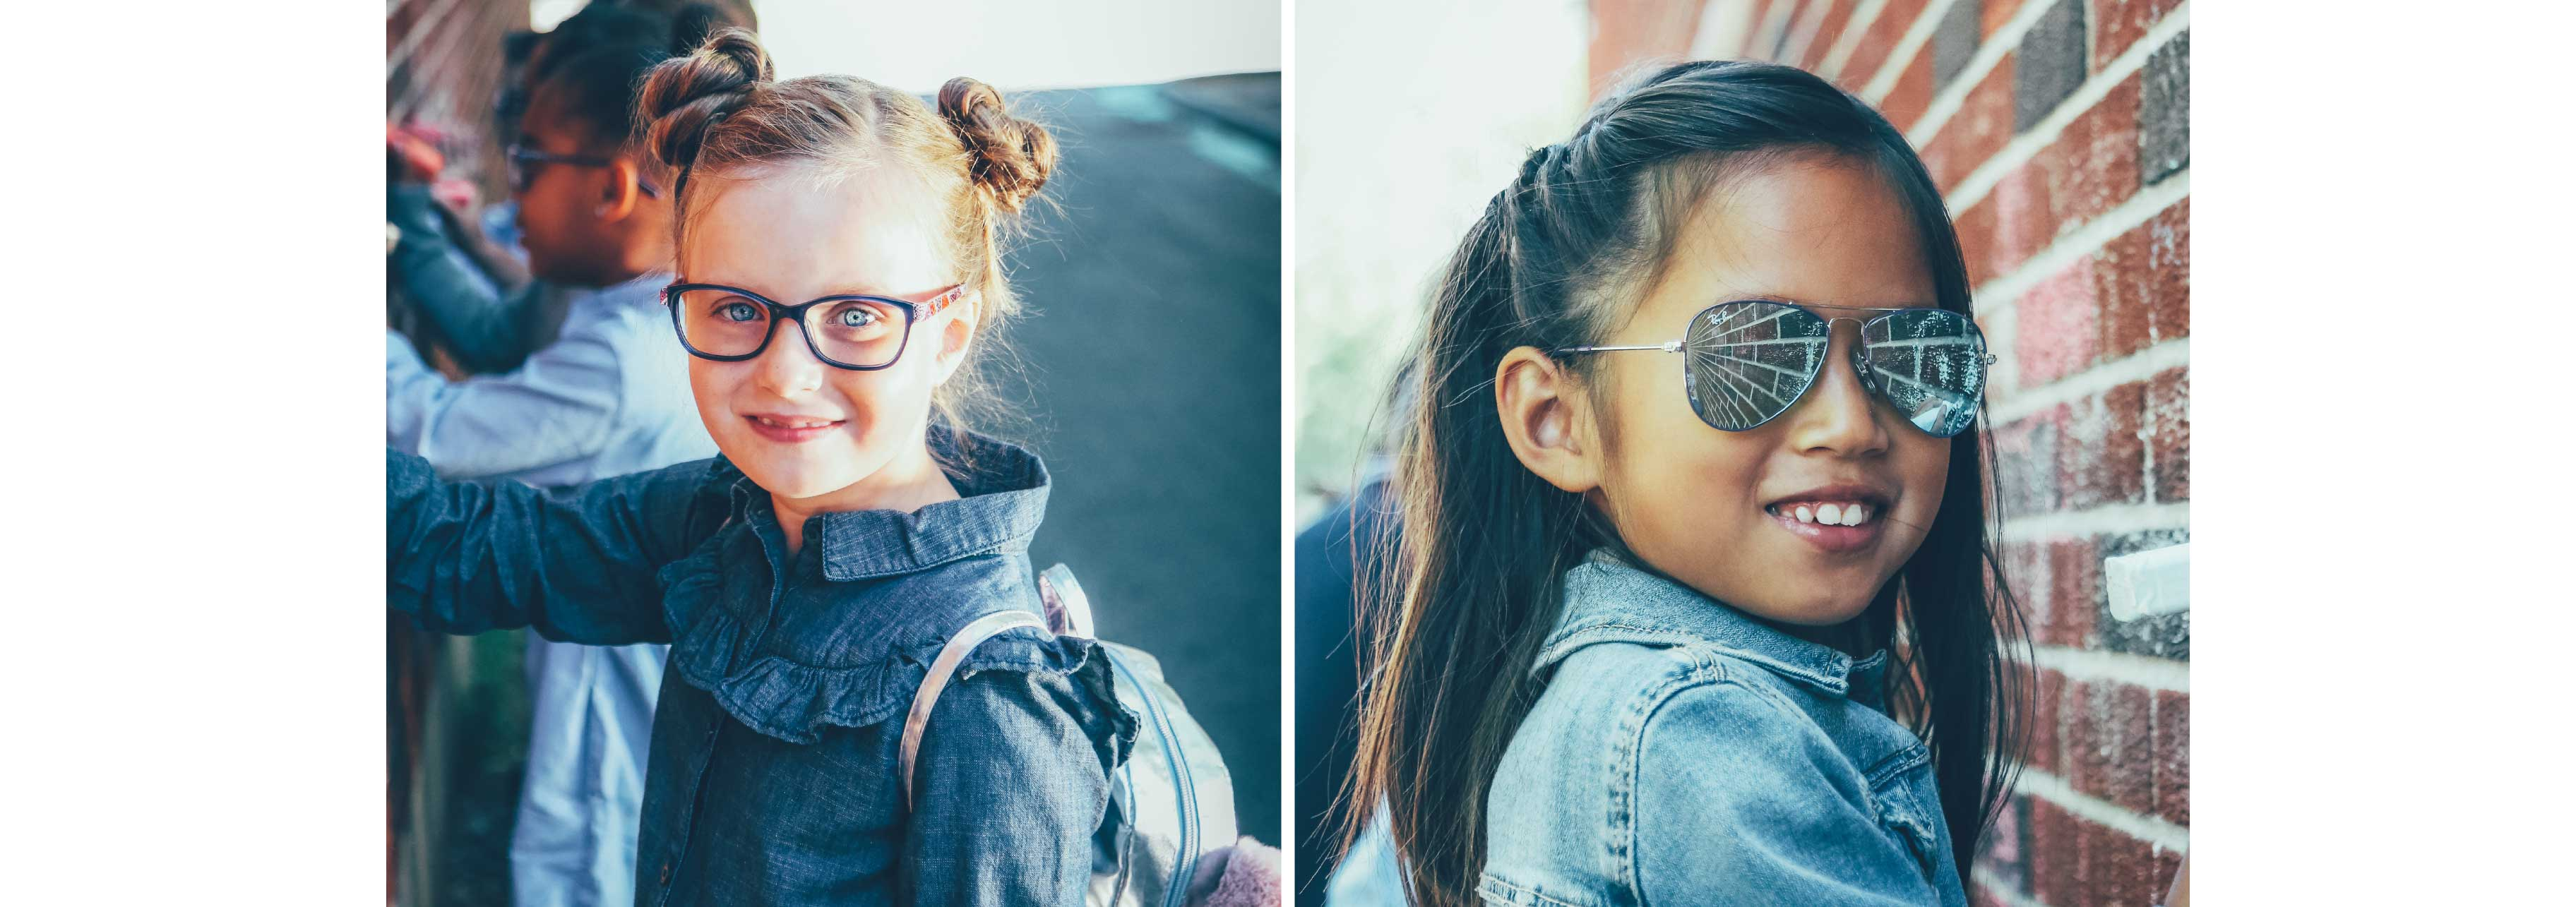 Two little girls are wearing glasses